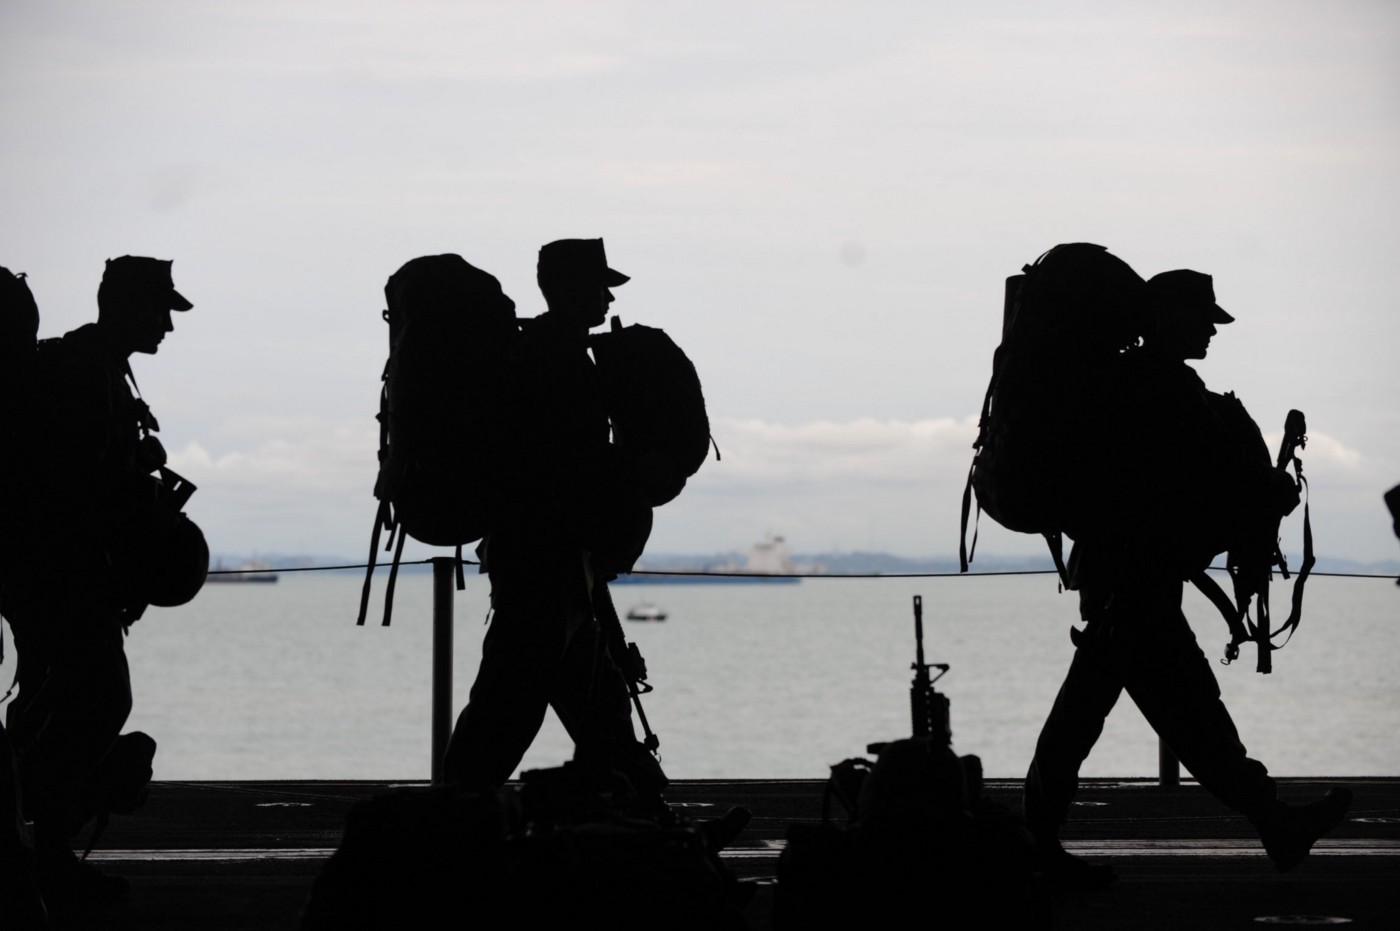 Three army soldiers lining up as they embark on a mission at sea in full combat gear, looking like black shadows against the grayish sky.